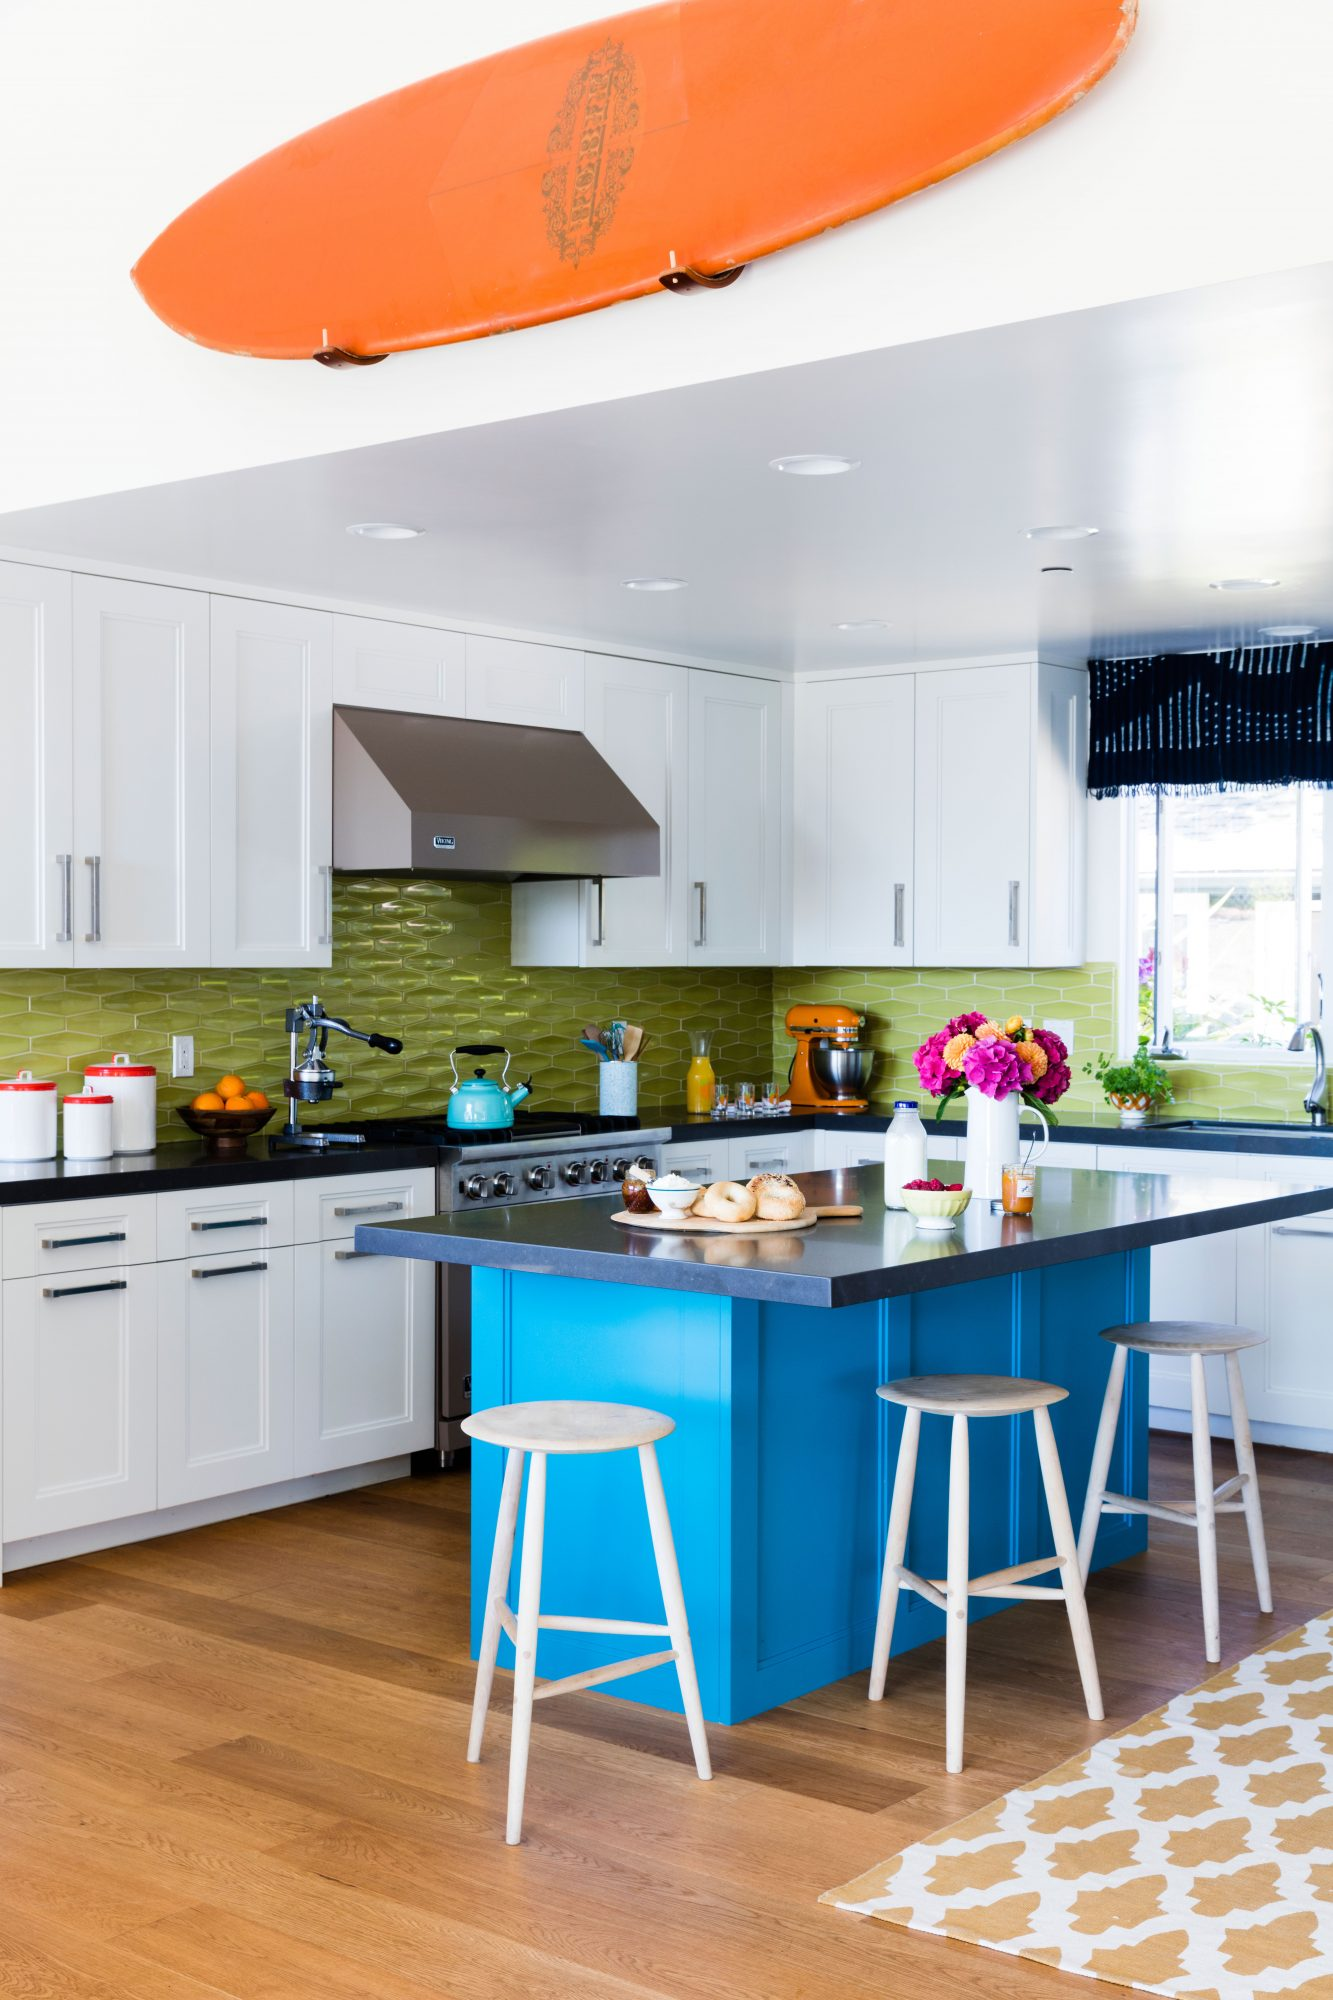 Get the Blues: Pacific Palisades by Benjamin Moore                                       Designer Allison Bloom cooked up a razzle-dazzle palette for this funky Stinson Beach, California, kitchen. A zingy lime tile backsplash sets the freewheeling tone, while an island doused in a vibrant cerulean points to the Pacific Ocean that's just steps from the house. Beechwood stools and warm wooden floors ground the wild colors to keep the mood mellow.